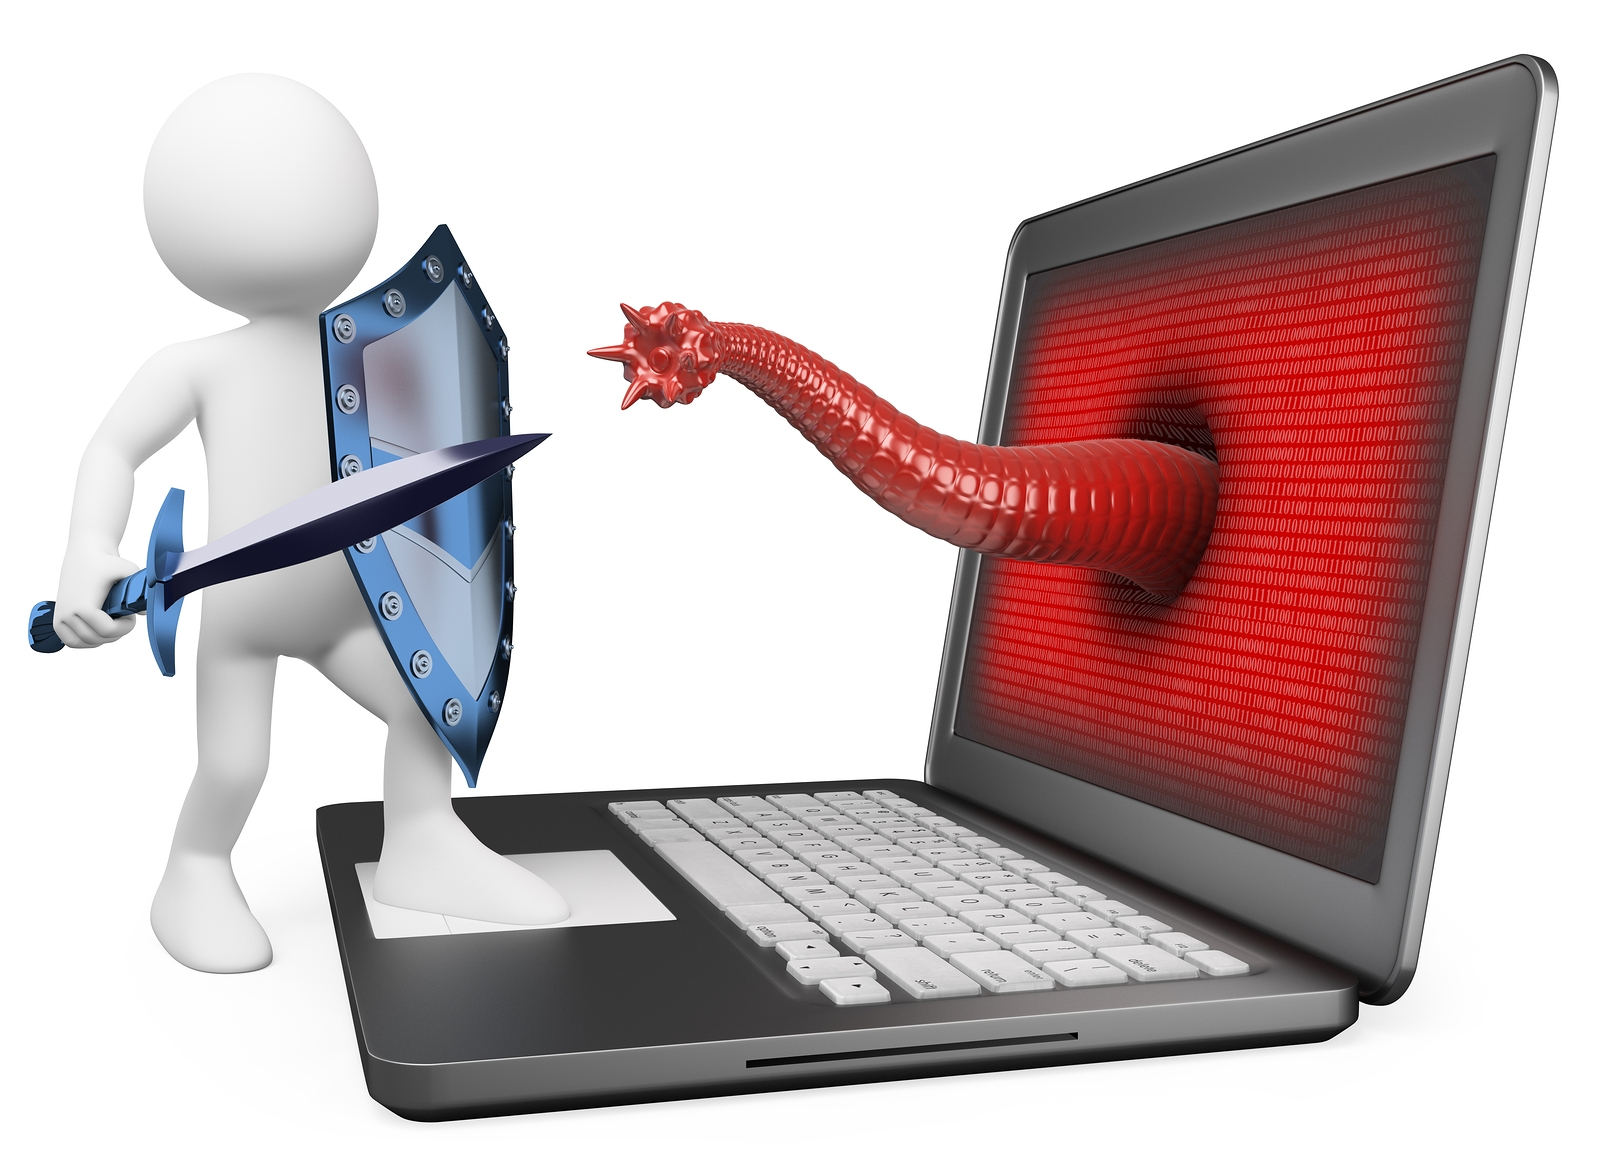 You May Need More Help Than Your Antivirus Software Can Give